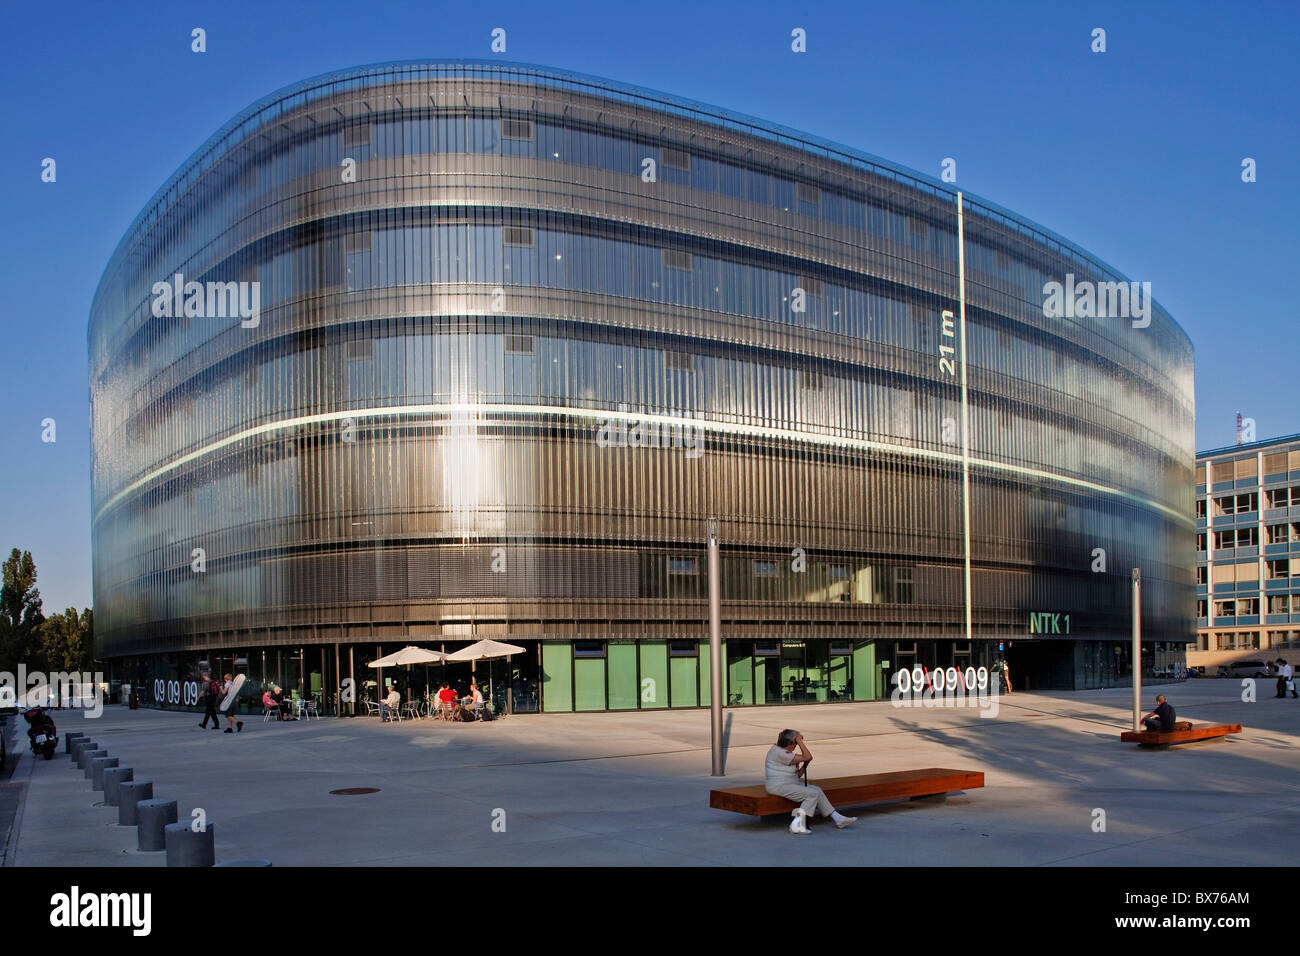 6161677dbd4 Technical Science Stock Photos   Technical Science Stock Images - Alamy